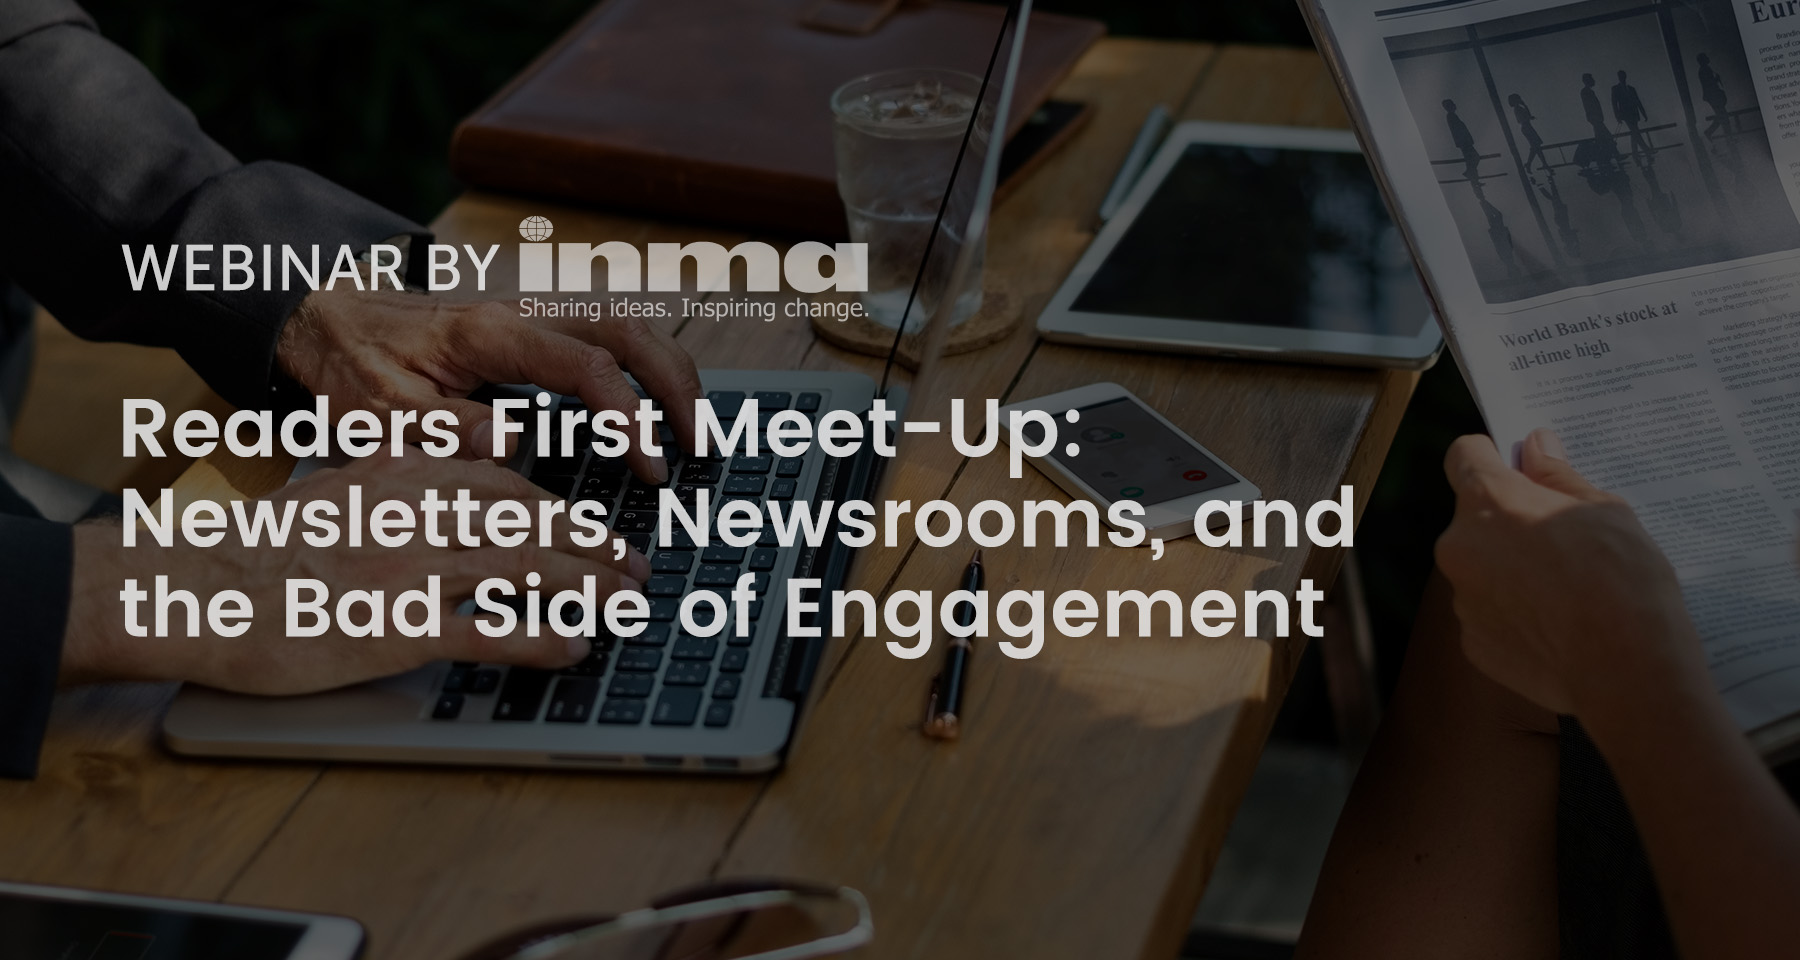 Upcoming Readers First Meet-Up: Newsletters, newsrooms, and the bad side of engagement